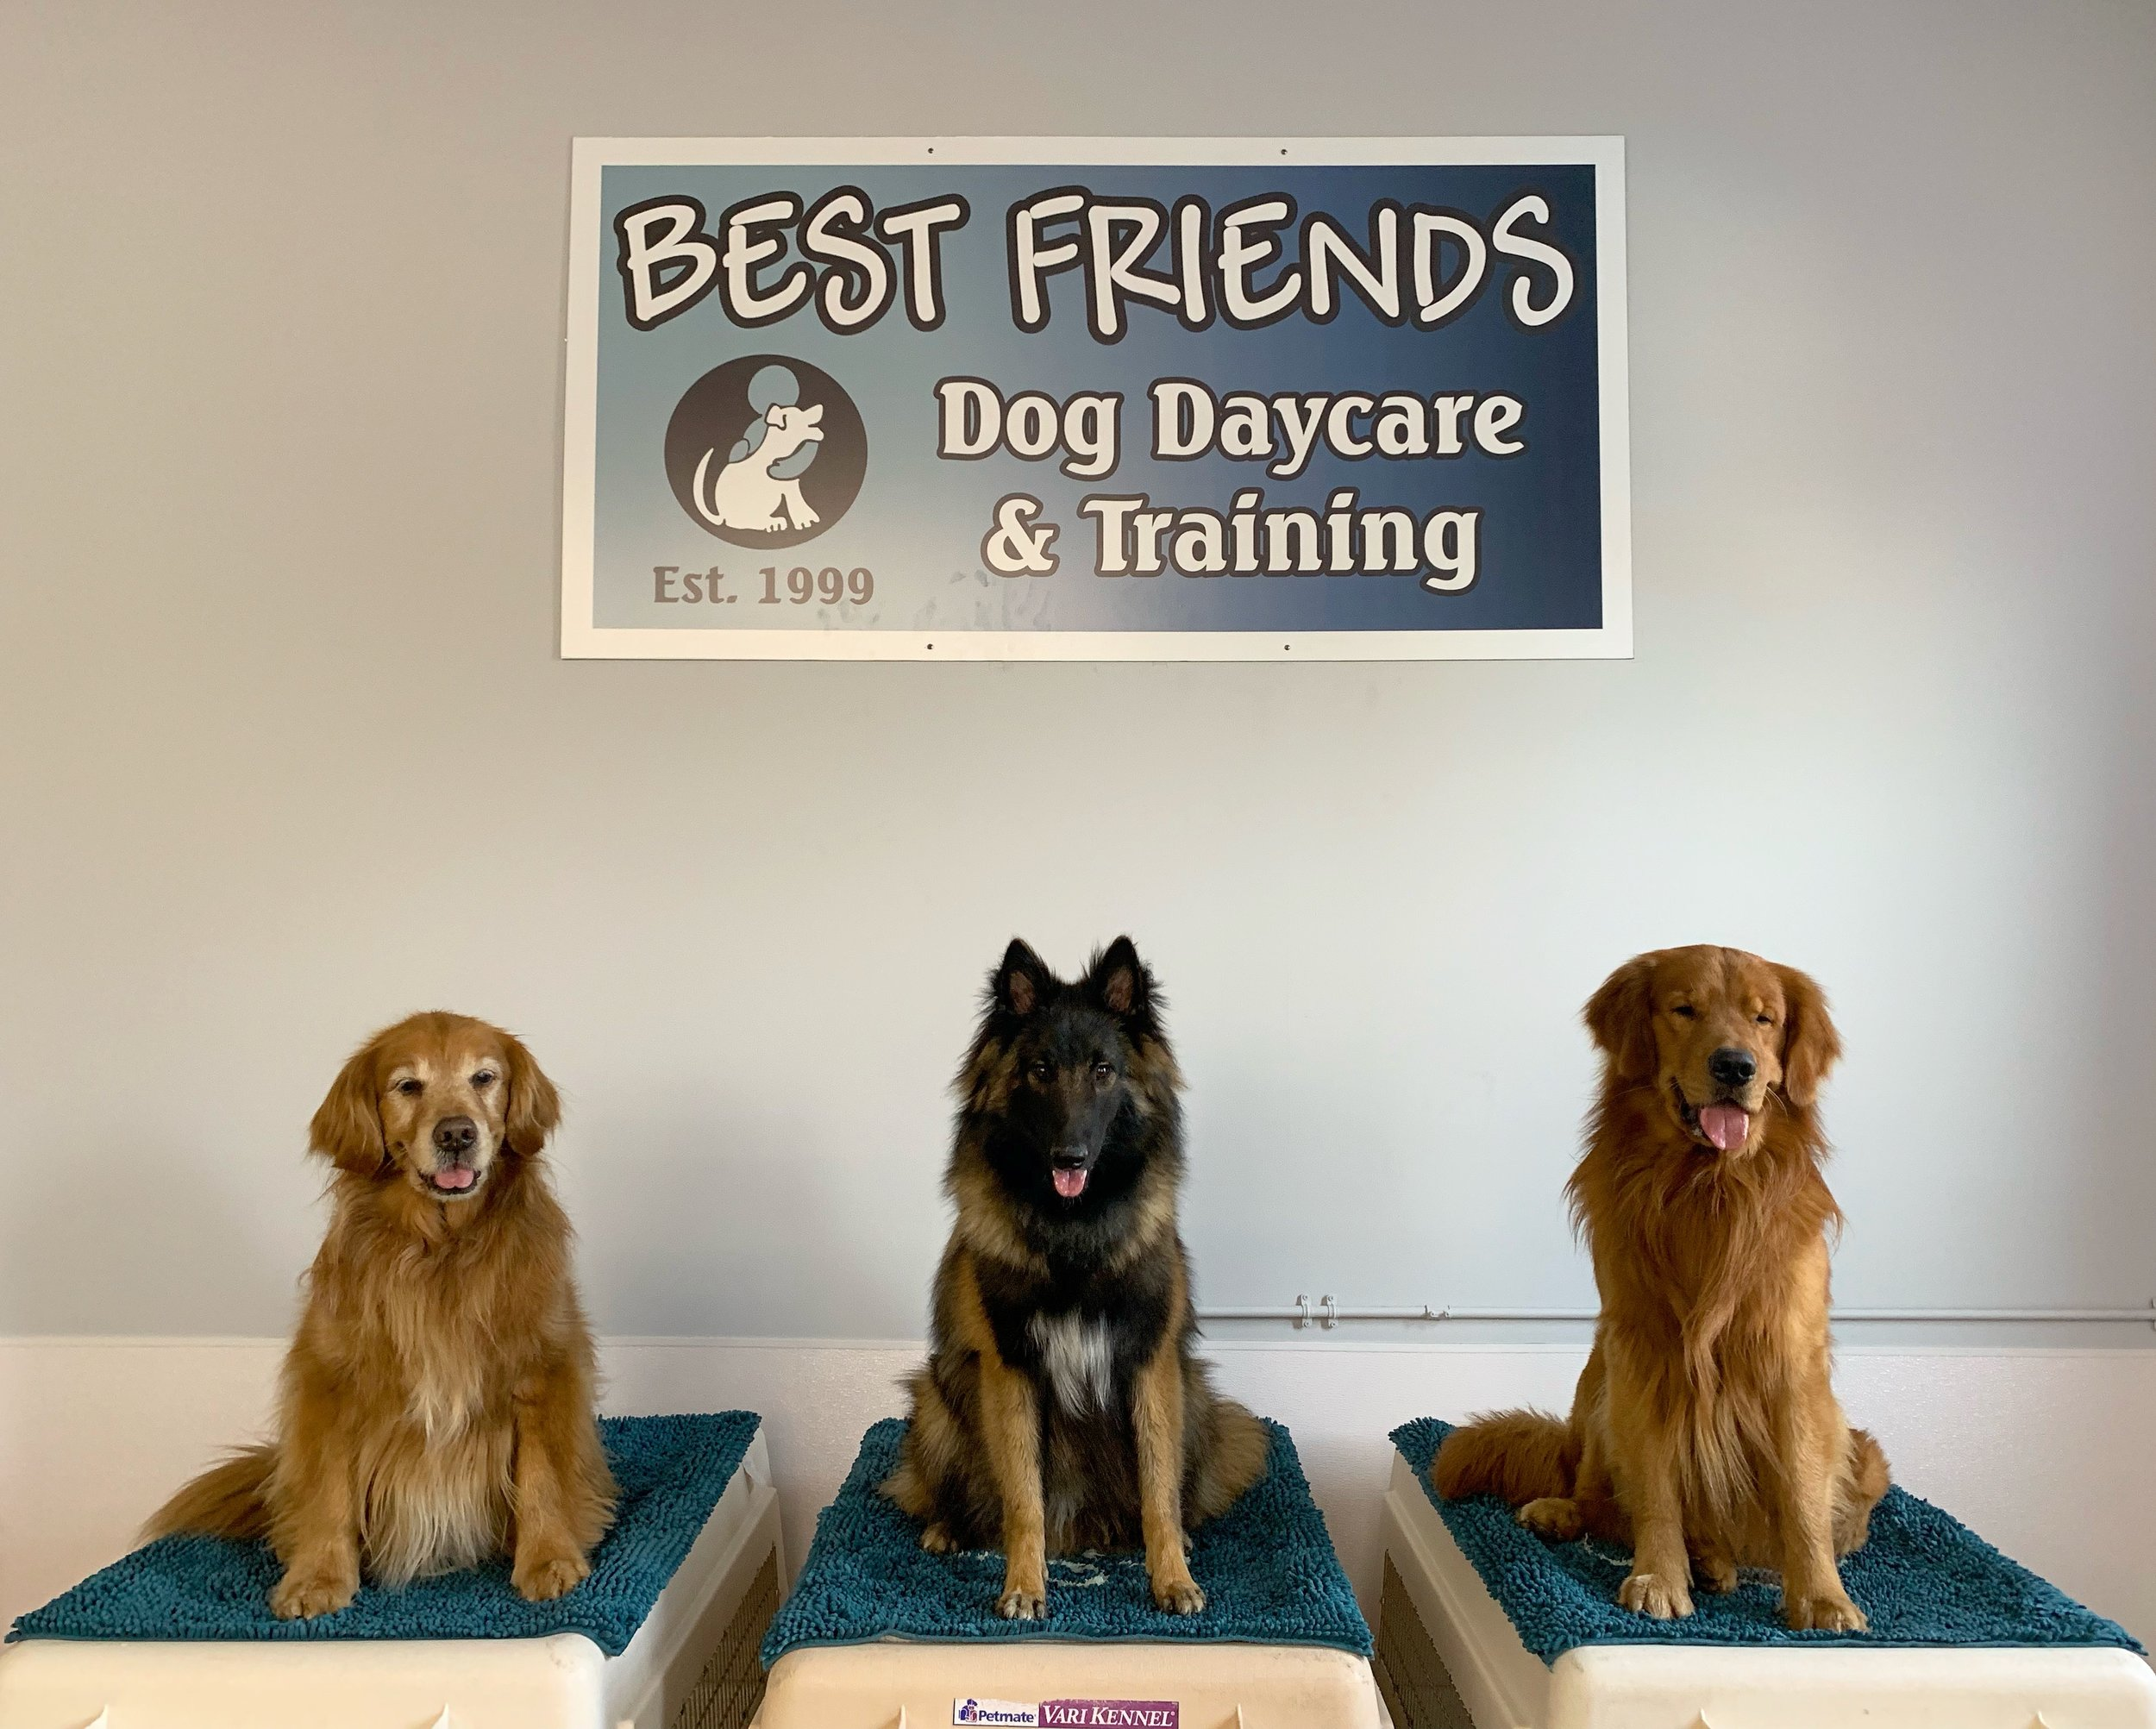 doggy daycare rates - Full day $26 *** 2nd dog full day $174 hour stay $175 hour stay $19Nail Trim $10Pick up/drop off $10 per trip